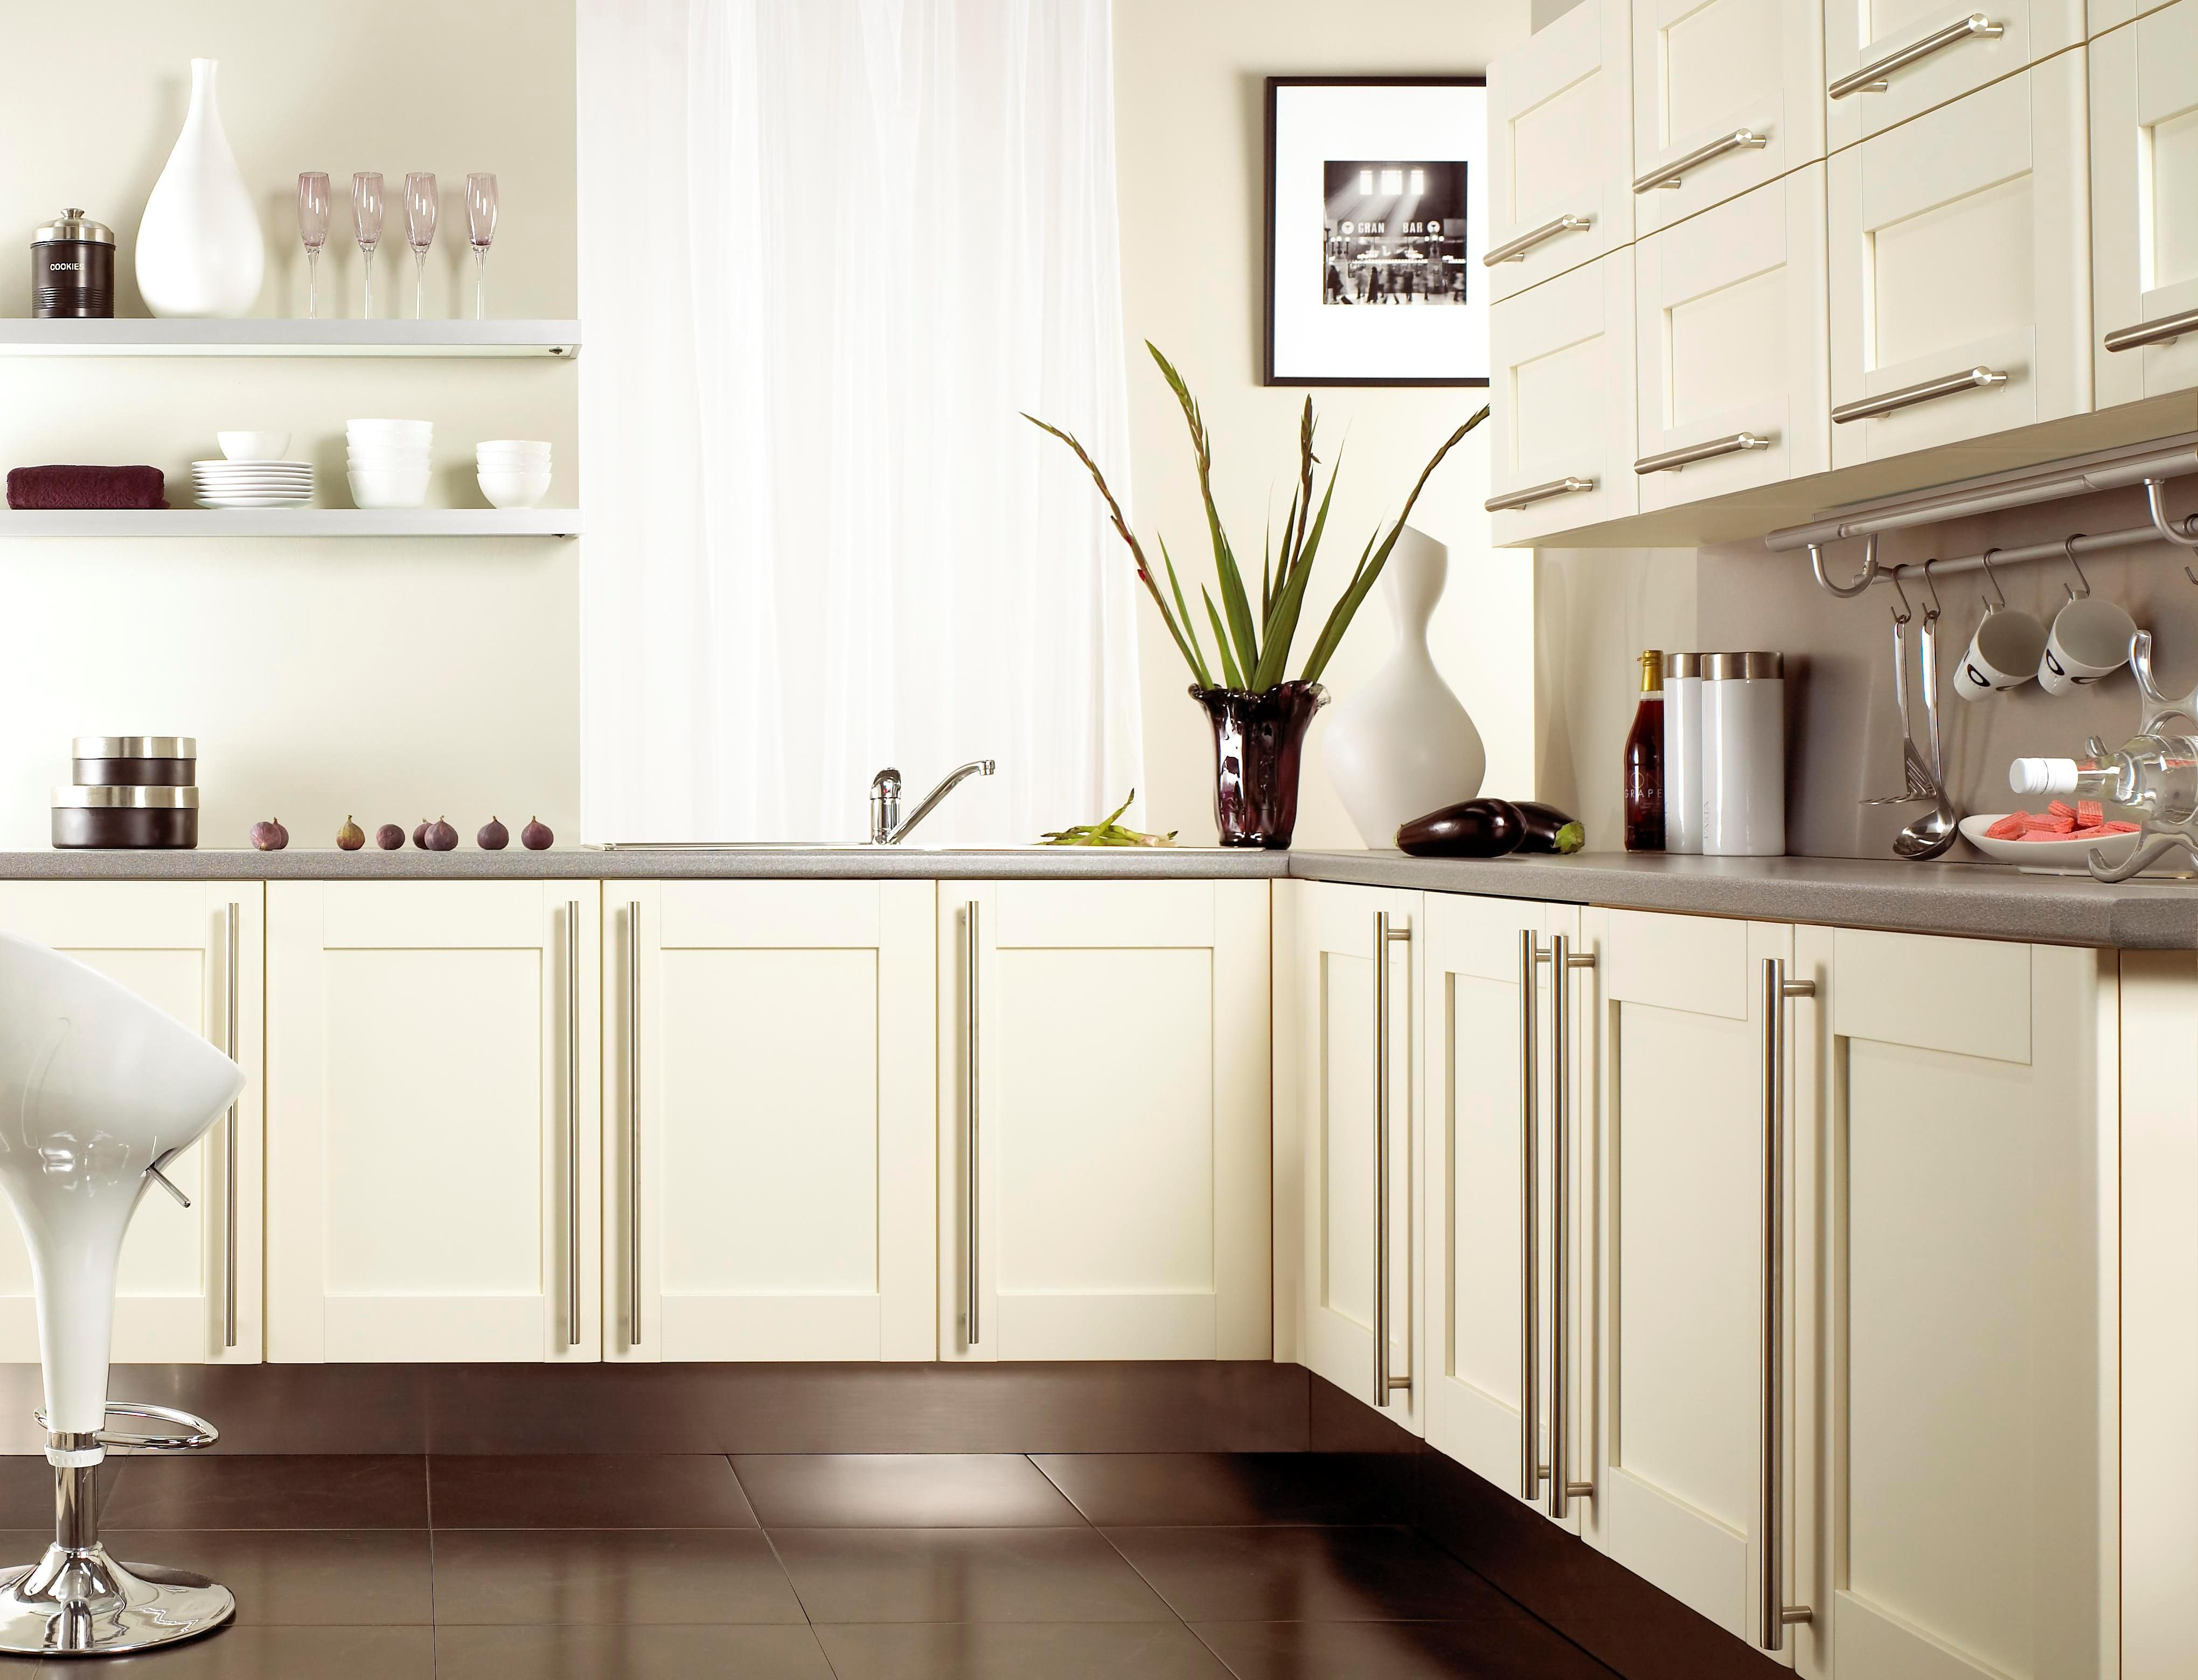 Ikea Home Planner 2014 Download Pl. 1000 images about cucine on ...